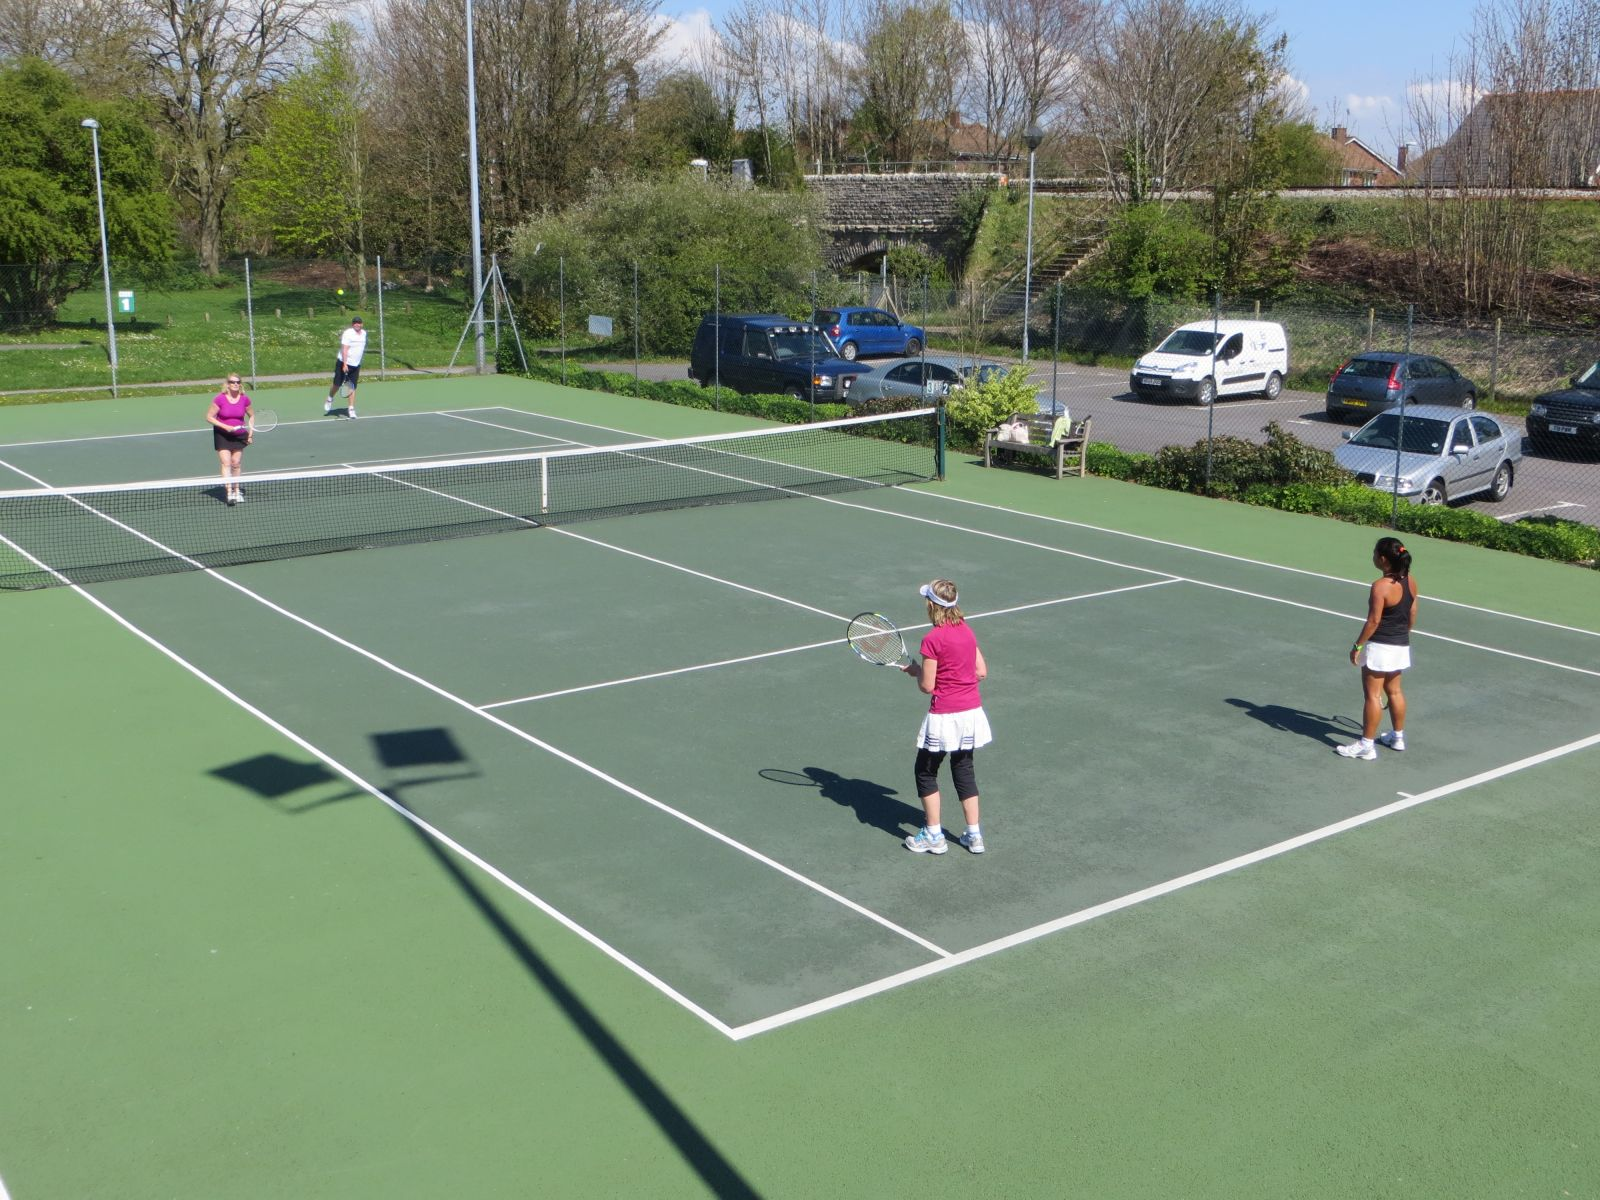 Easter 2014 Semi-finals Ros & Tim beating Felicia Pegg & Val Welch 6-3